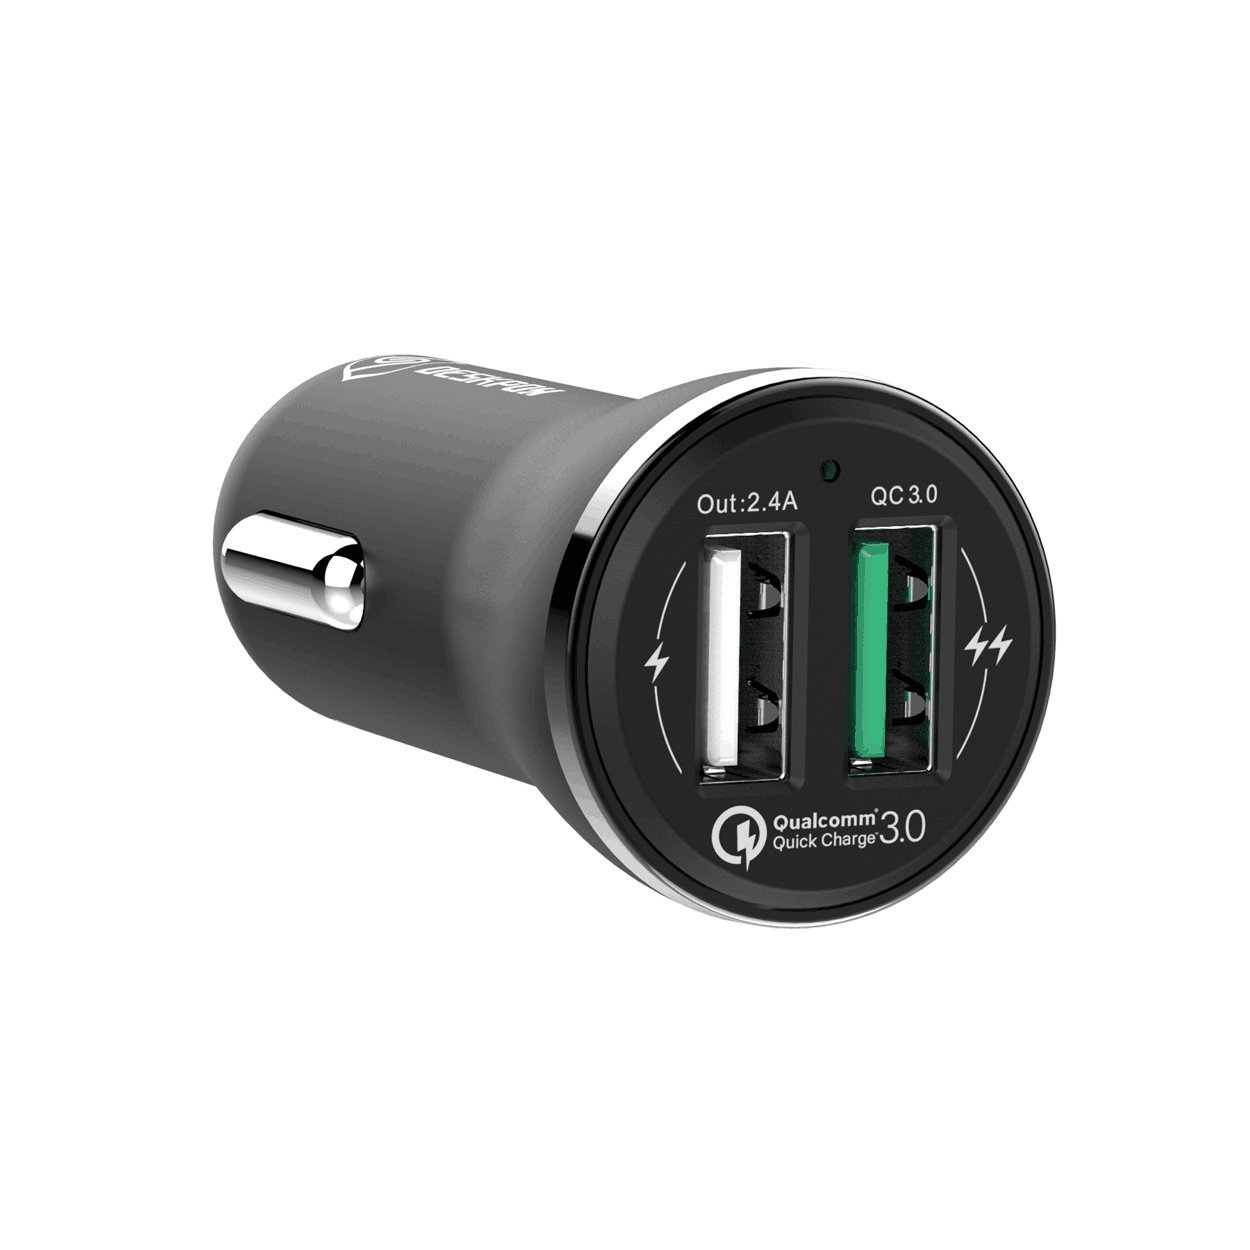 Motorola Moto G5S//G5 Plus Quick Charge 3.0 Car Charger Dual USB Port Compatible for Samsung Galaxy J7//J6//J6+//J4//J3 Prime Pro,S7 Edge//S7,S6 Edge//S6 S5 S4,Note 5 4 LG Q6 5Ft Micro USB Cable TPLtech 4333144594